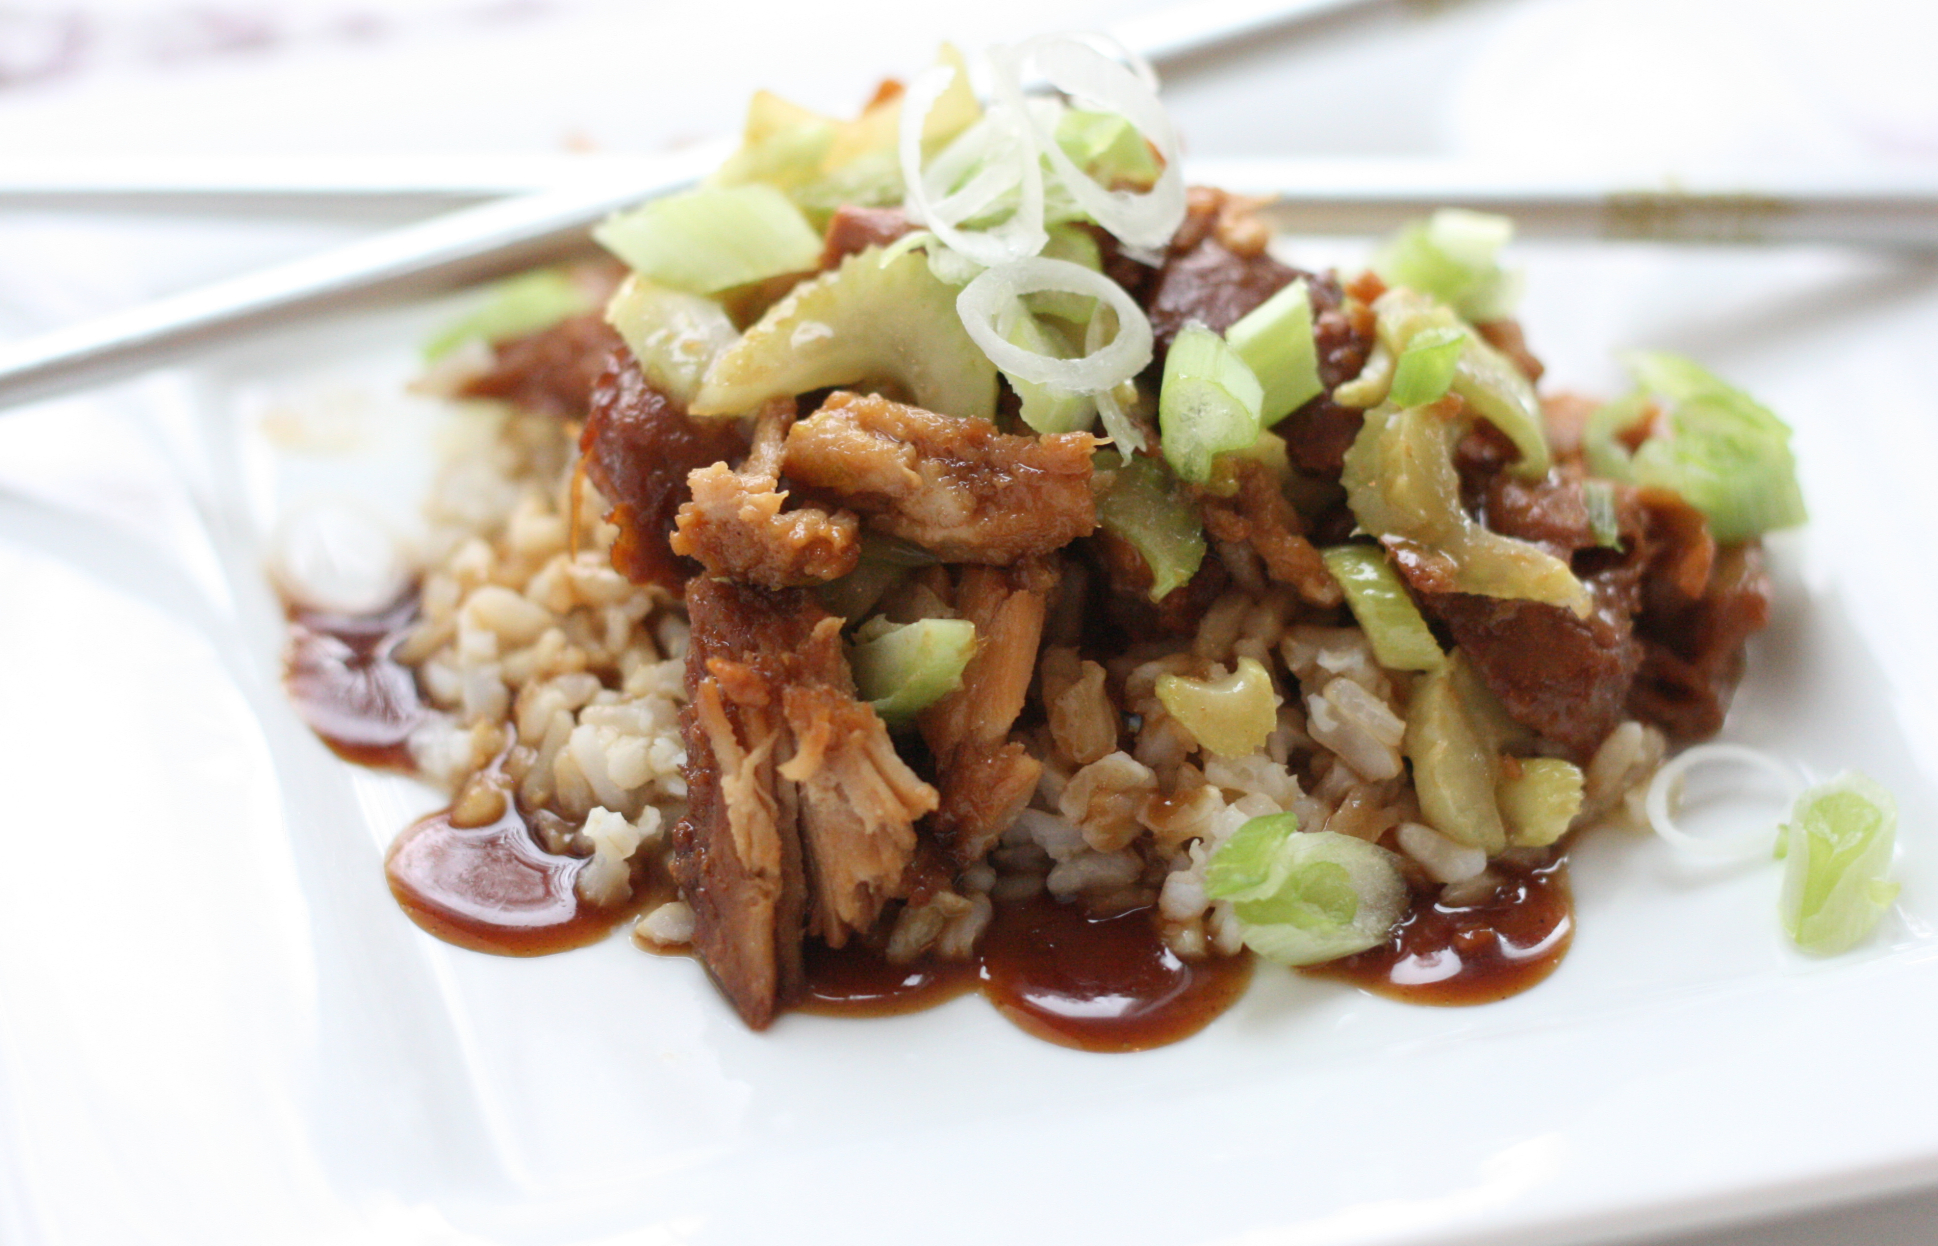 Hoisin-Glazed Pork over Buttered Brown Rice